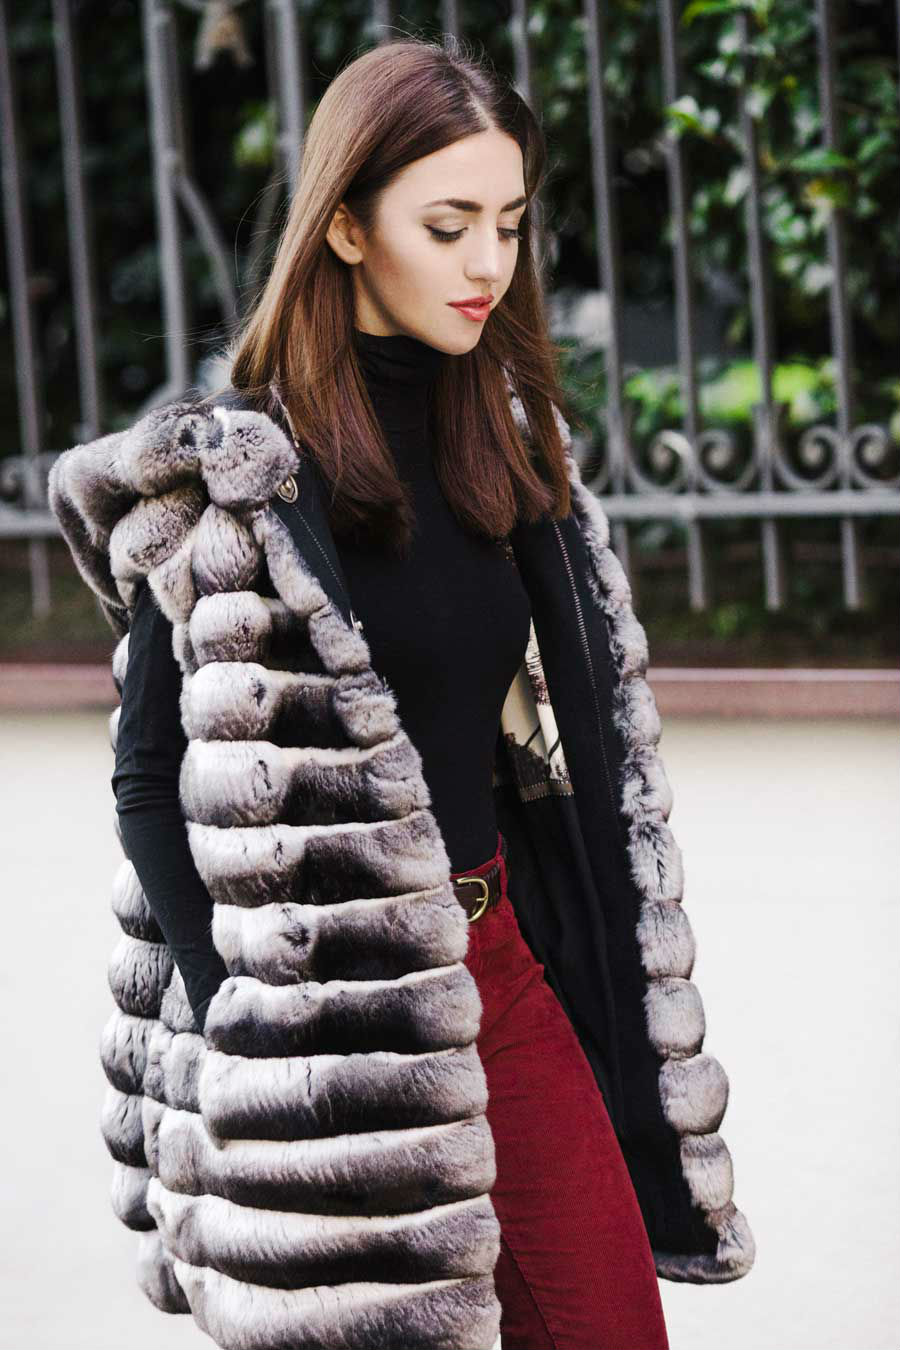 chinchilla coat lady fur milan